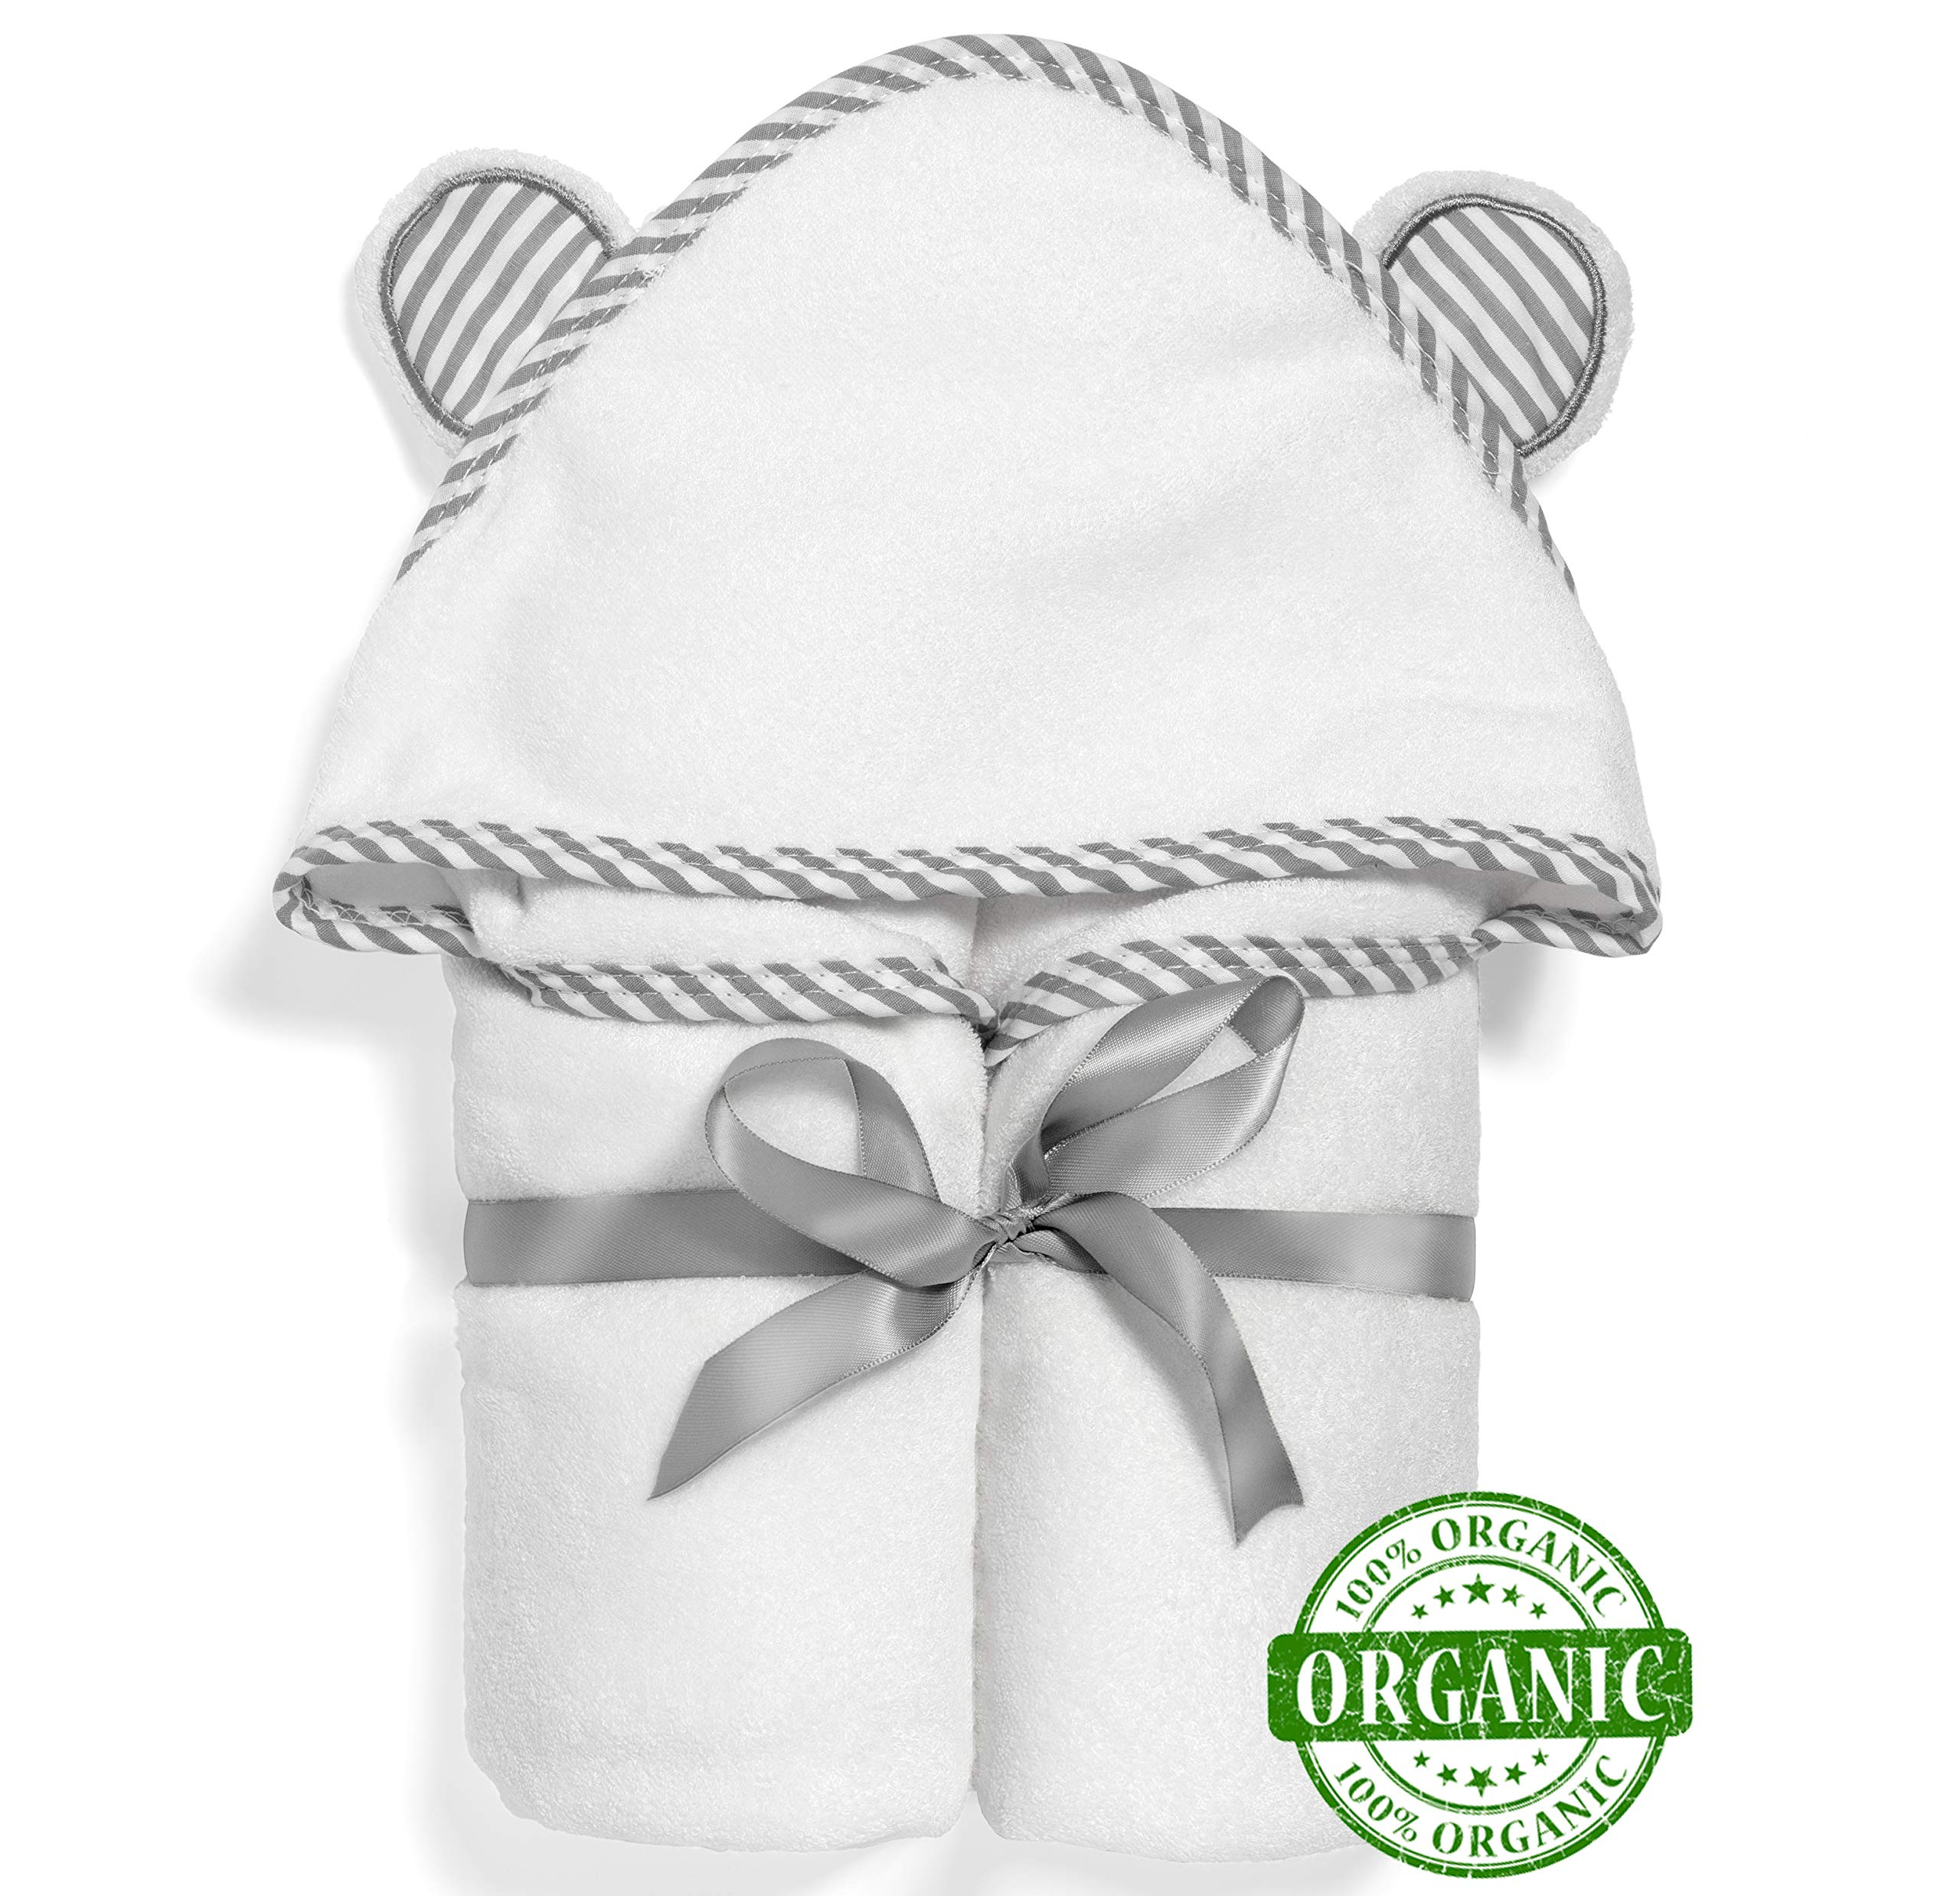 100% Organic Bamboo Baby Towel with Hood by Babyvybe - Soft Hooded Towels for Boys and Girls - Ultra Absorbent, Quick-Dry, Hypoallergenic by Babyvybe